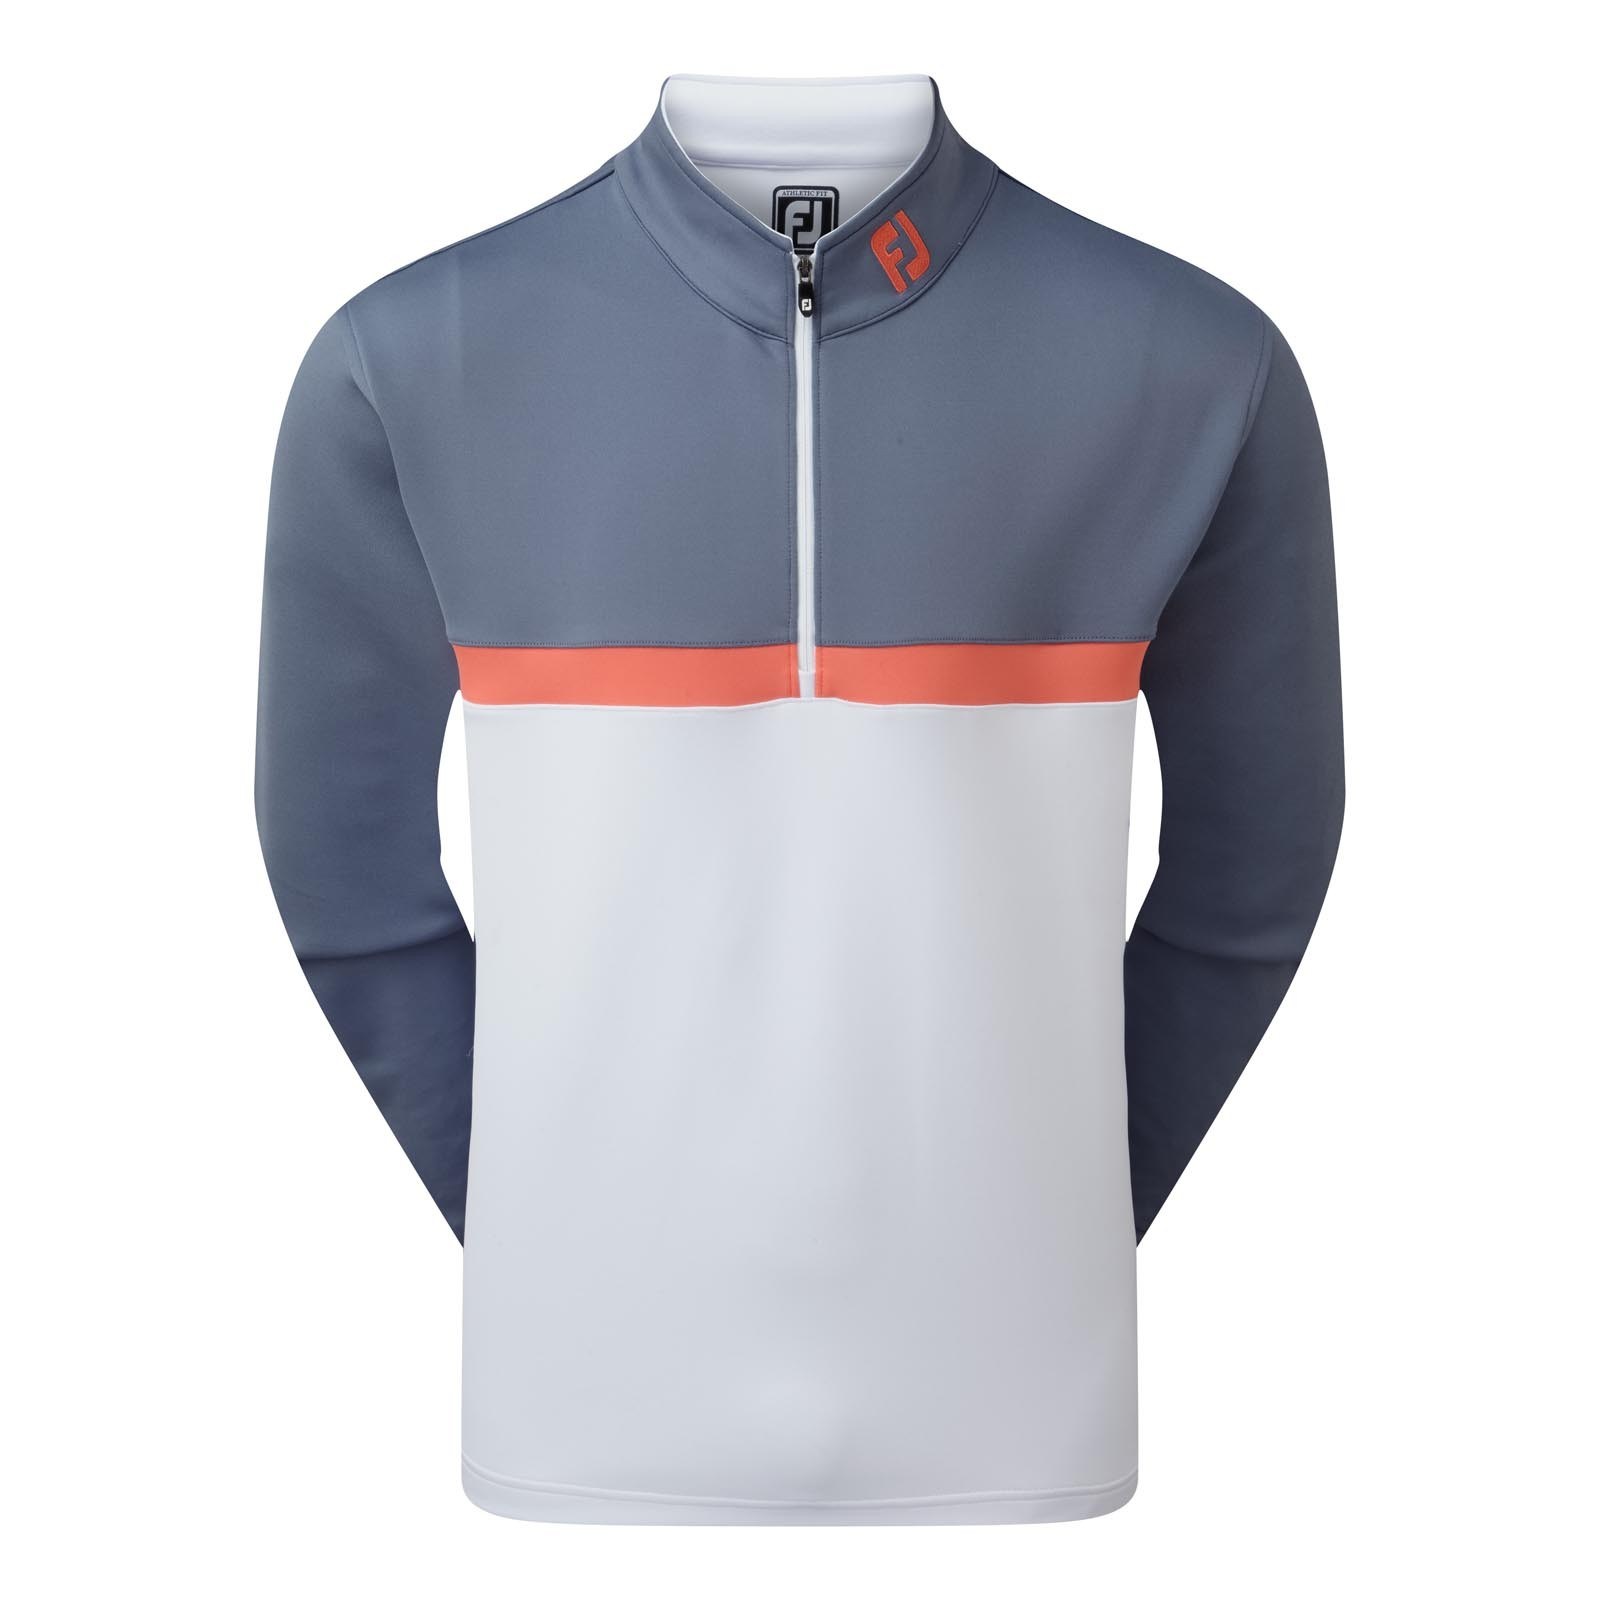 Footjoy Colour Blocked Chill-Out Pullover